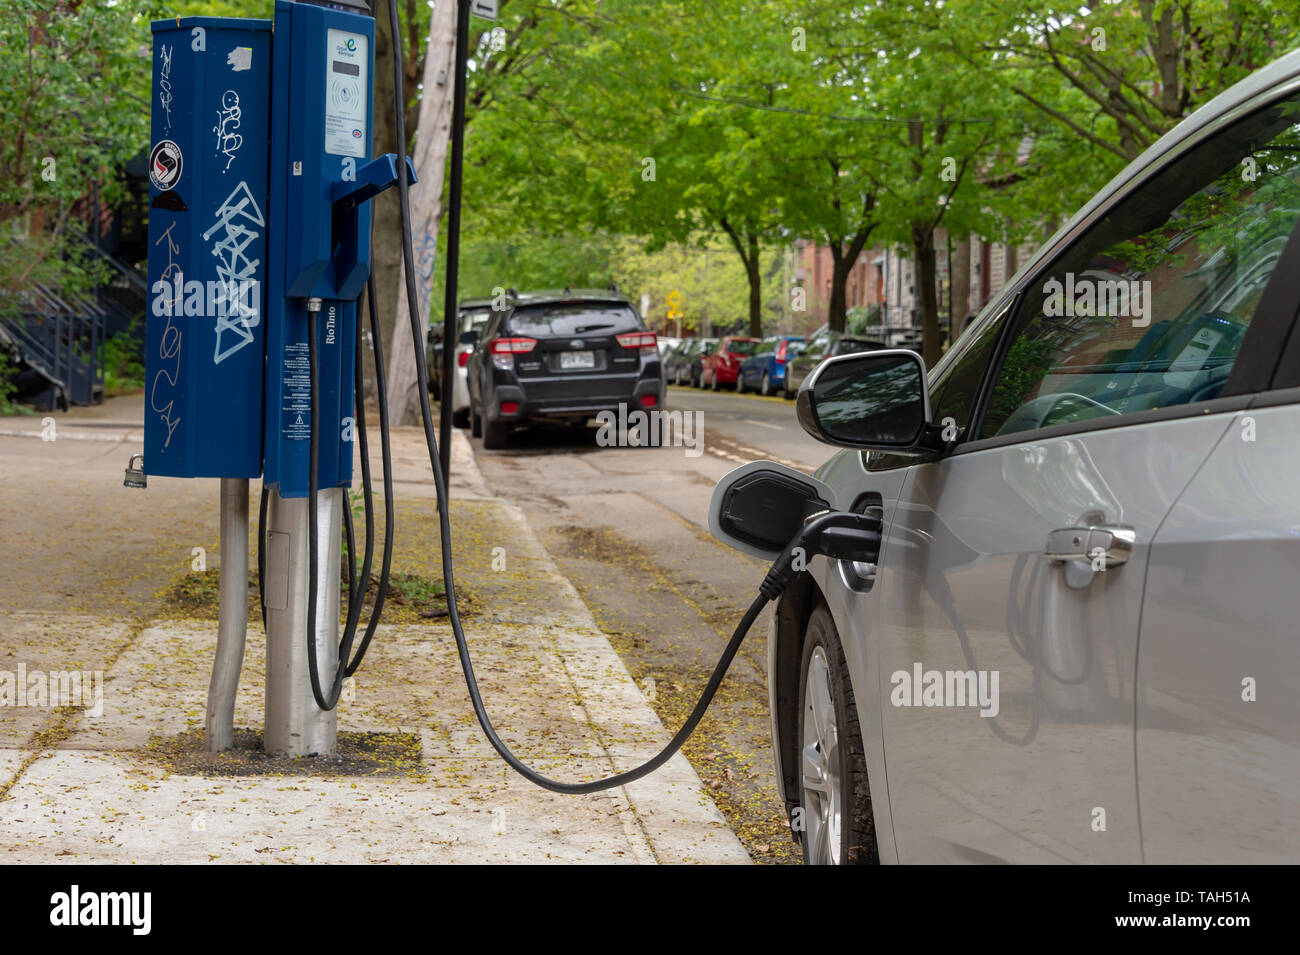 Montreal, CA - 25 May 2019: Chevrolet Volt electric car plugged into an EV charging station. - Stock Image